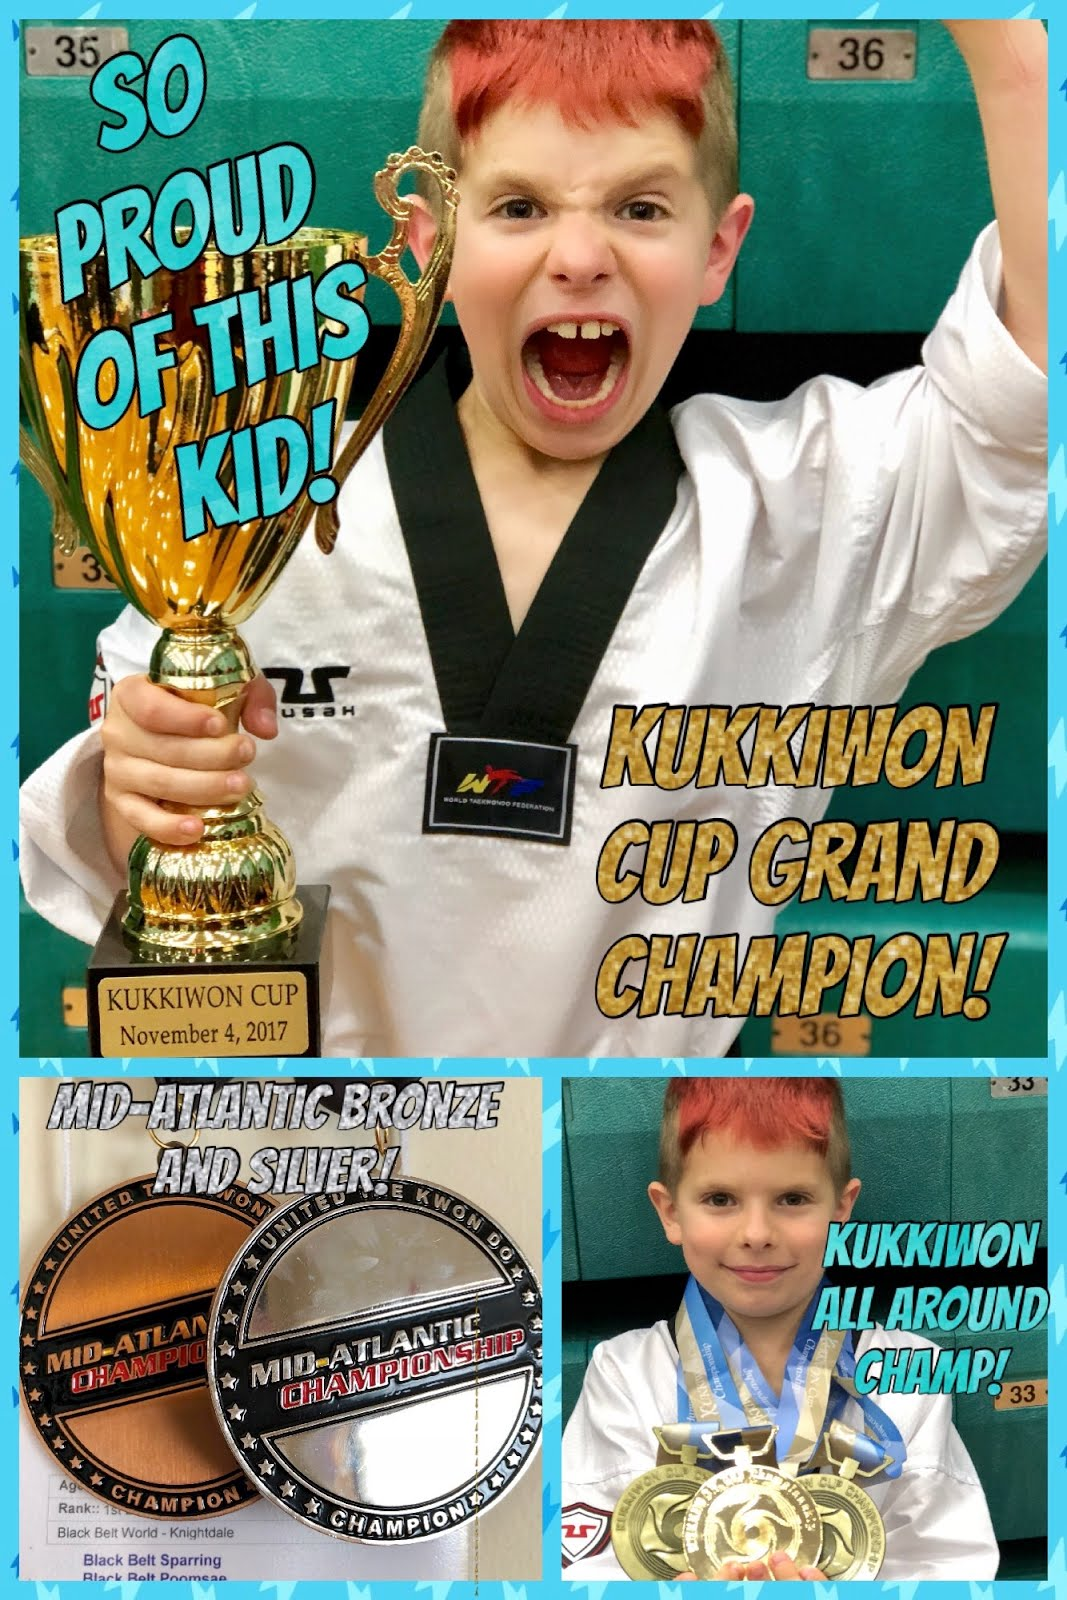 Kukkiwon Cup Grand Champion and Bronze and Silver Medalist at Mid-Atlantic November 2017